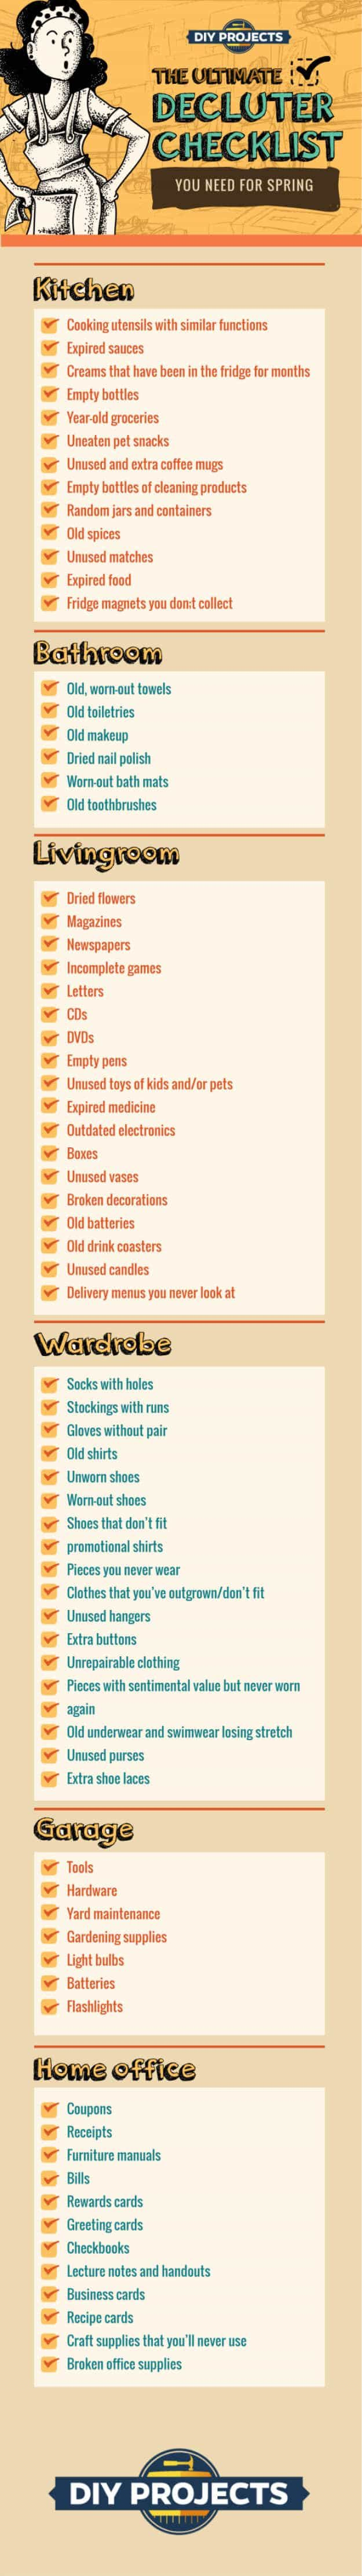 best cleaning images on pinterest households cleaning hacks